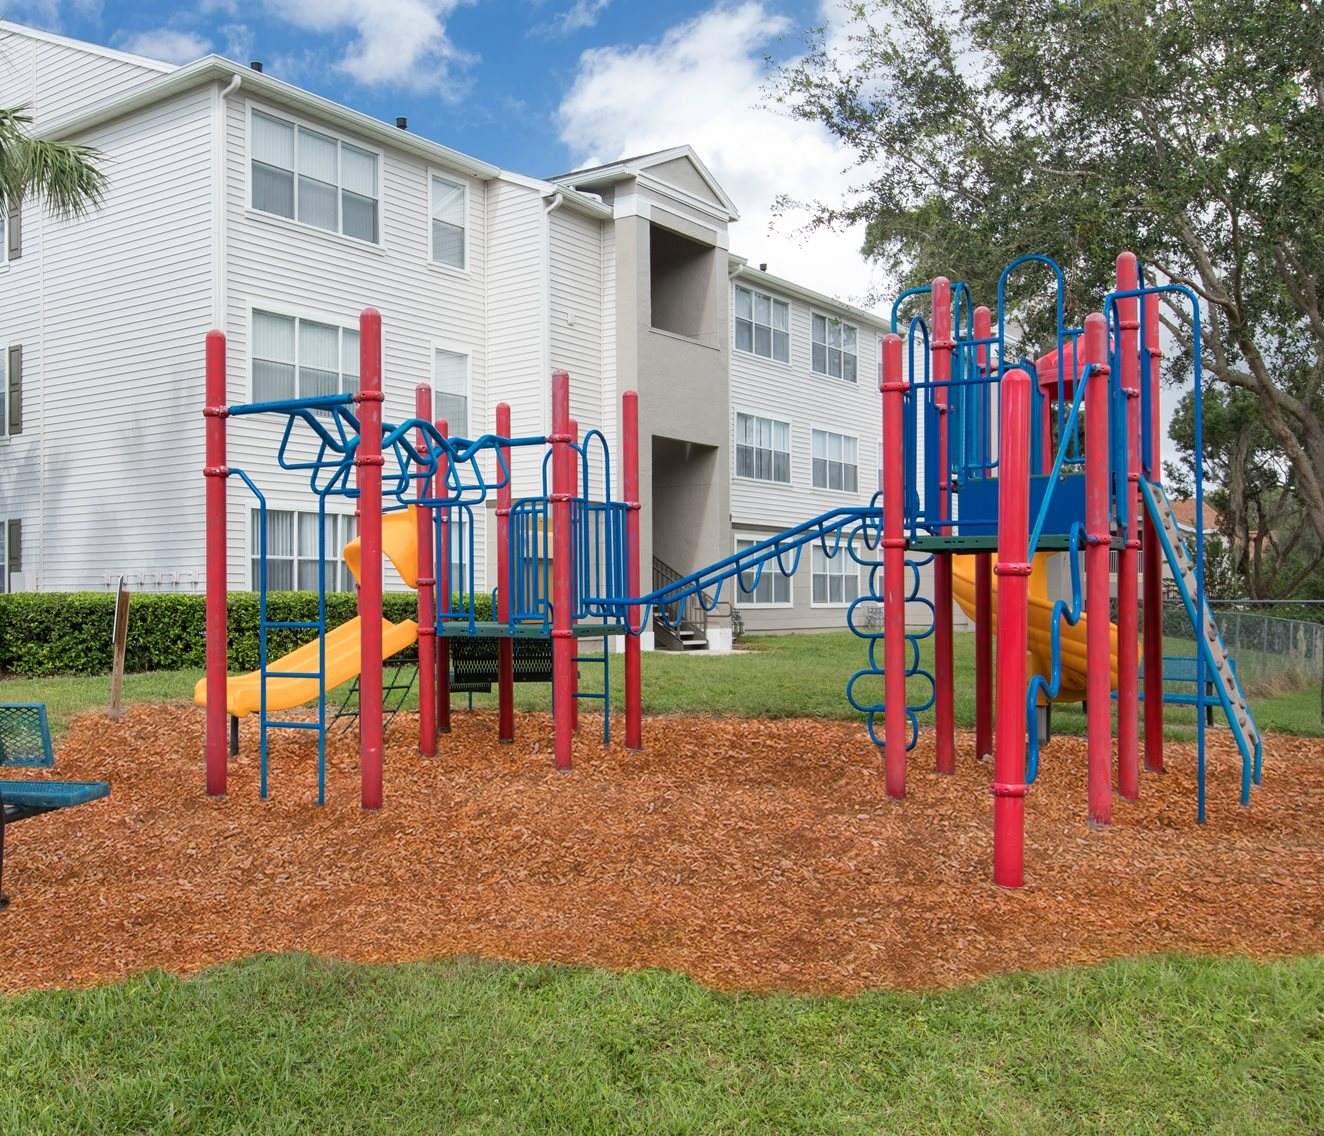 Hunters Creek Apartments for rent in Deland, FL. Make this community your new home or visit other ConcordRENTS communities at ConcordRENTS.com. Playground